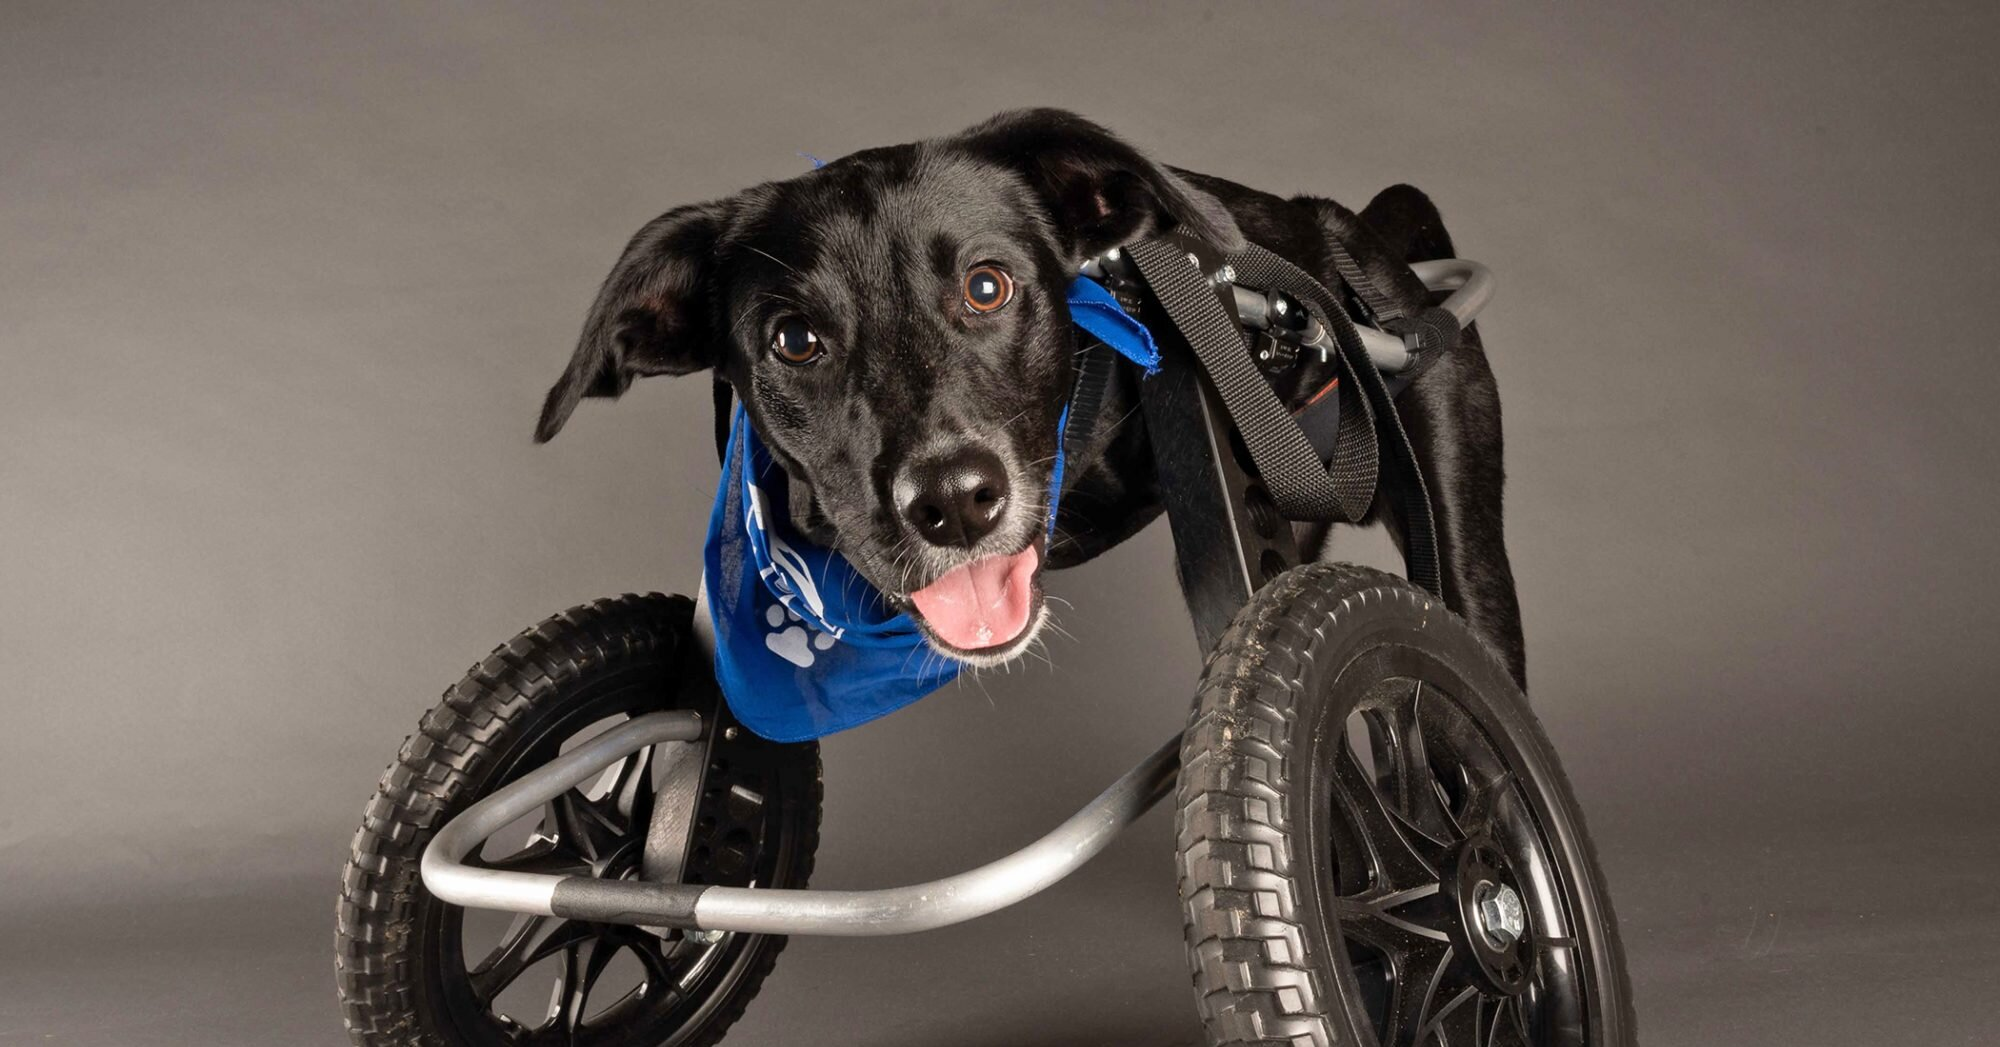 Check Out Jett, the Two-Wheeled Wonder of the 2021 Puppy Bowl!